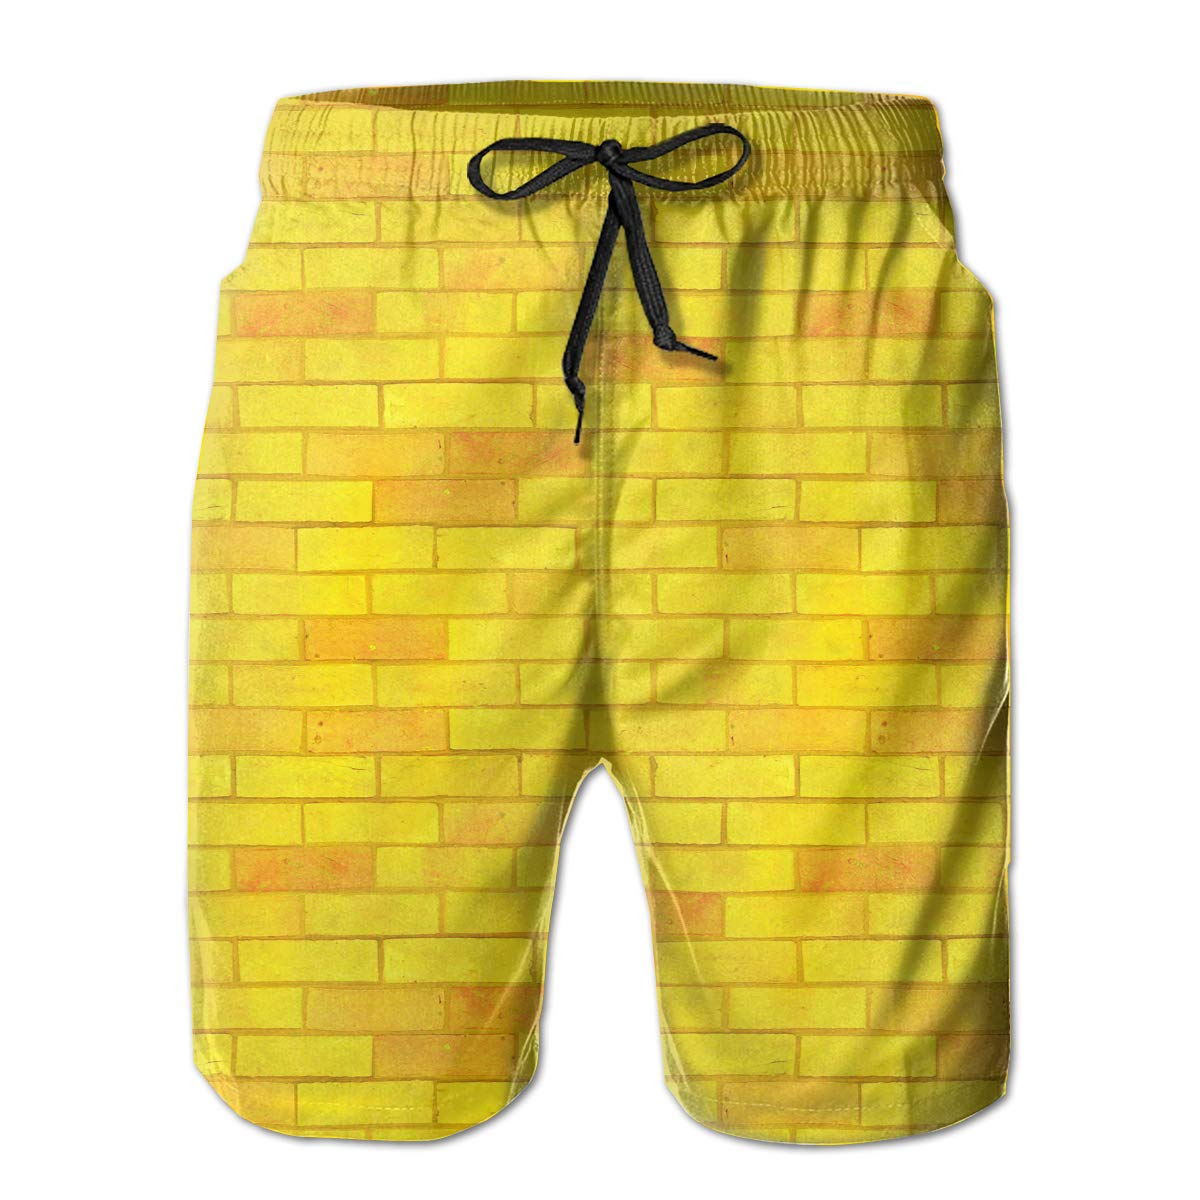 6f07cfcdb6 FASUWAVE Men's Swim Trunks Yellow Brick Road Quick Dry Beach Board Shorts  with Mesh Lining | Amazon.com